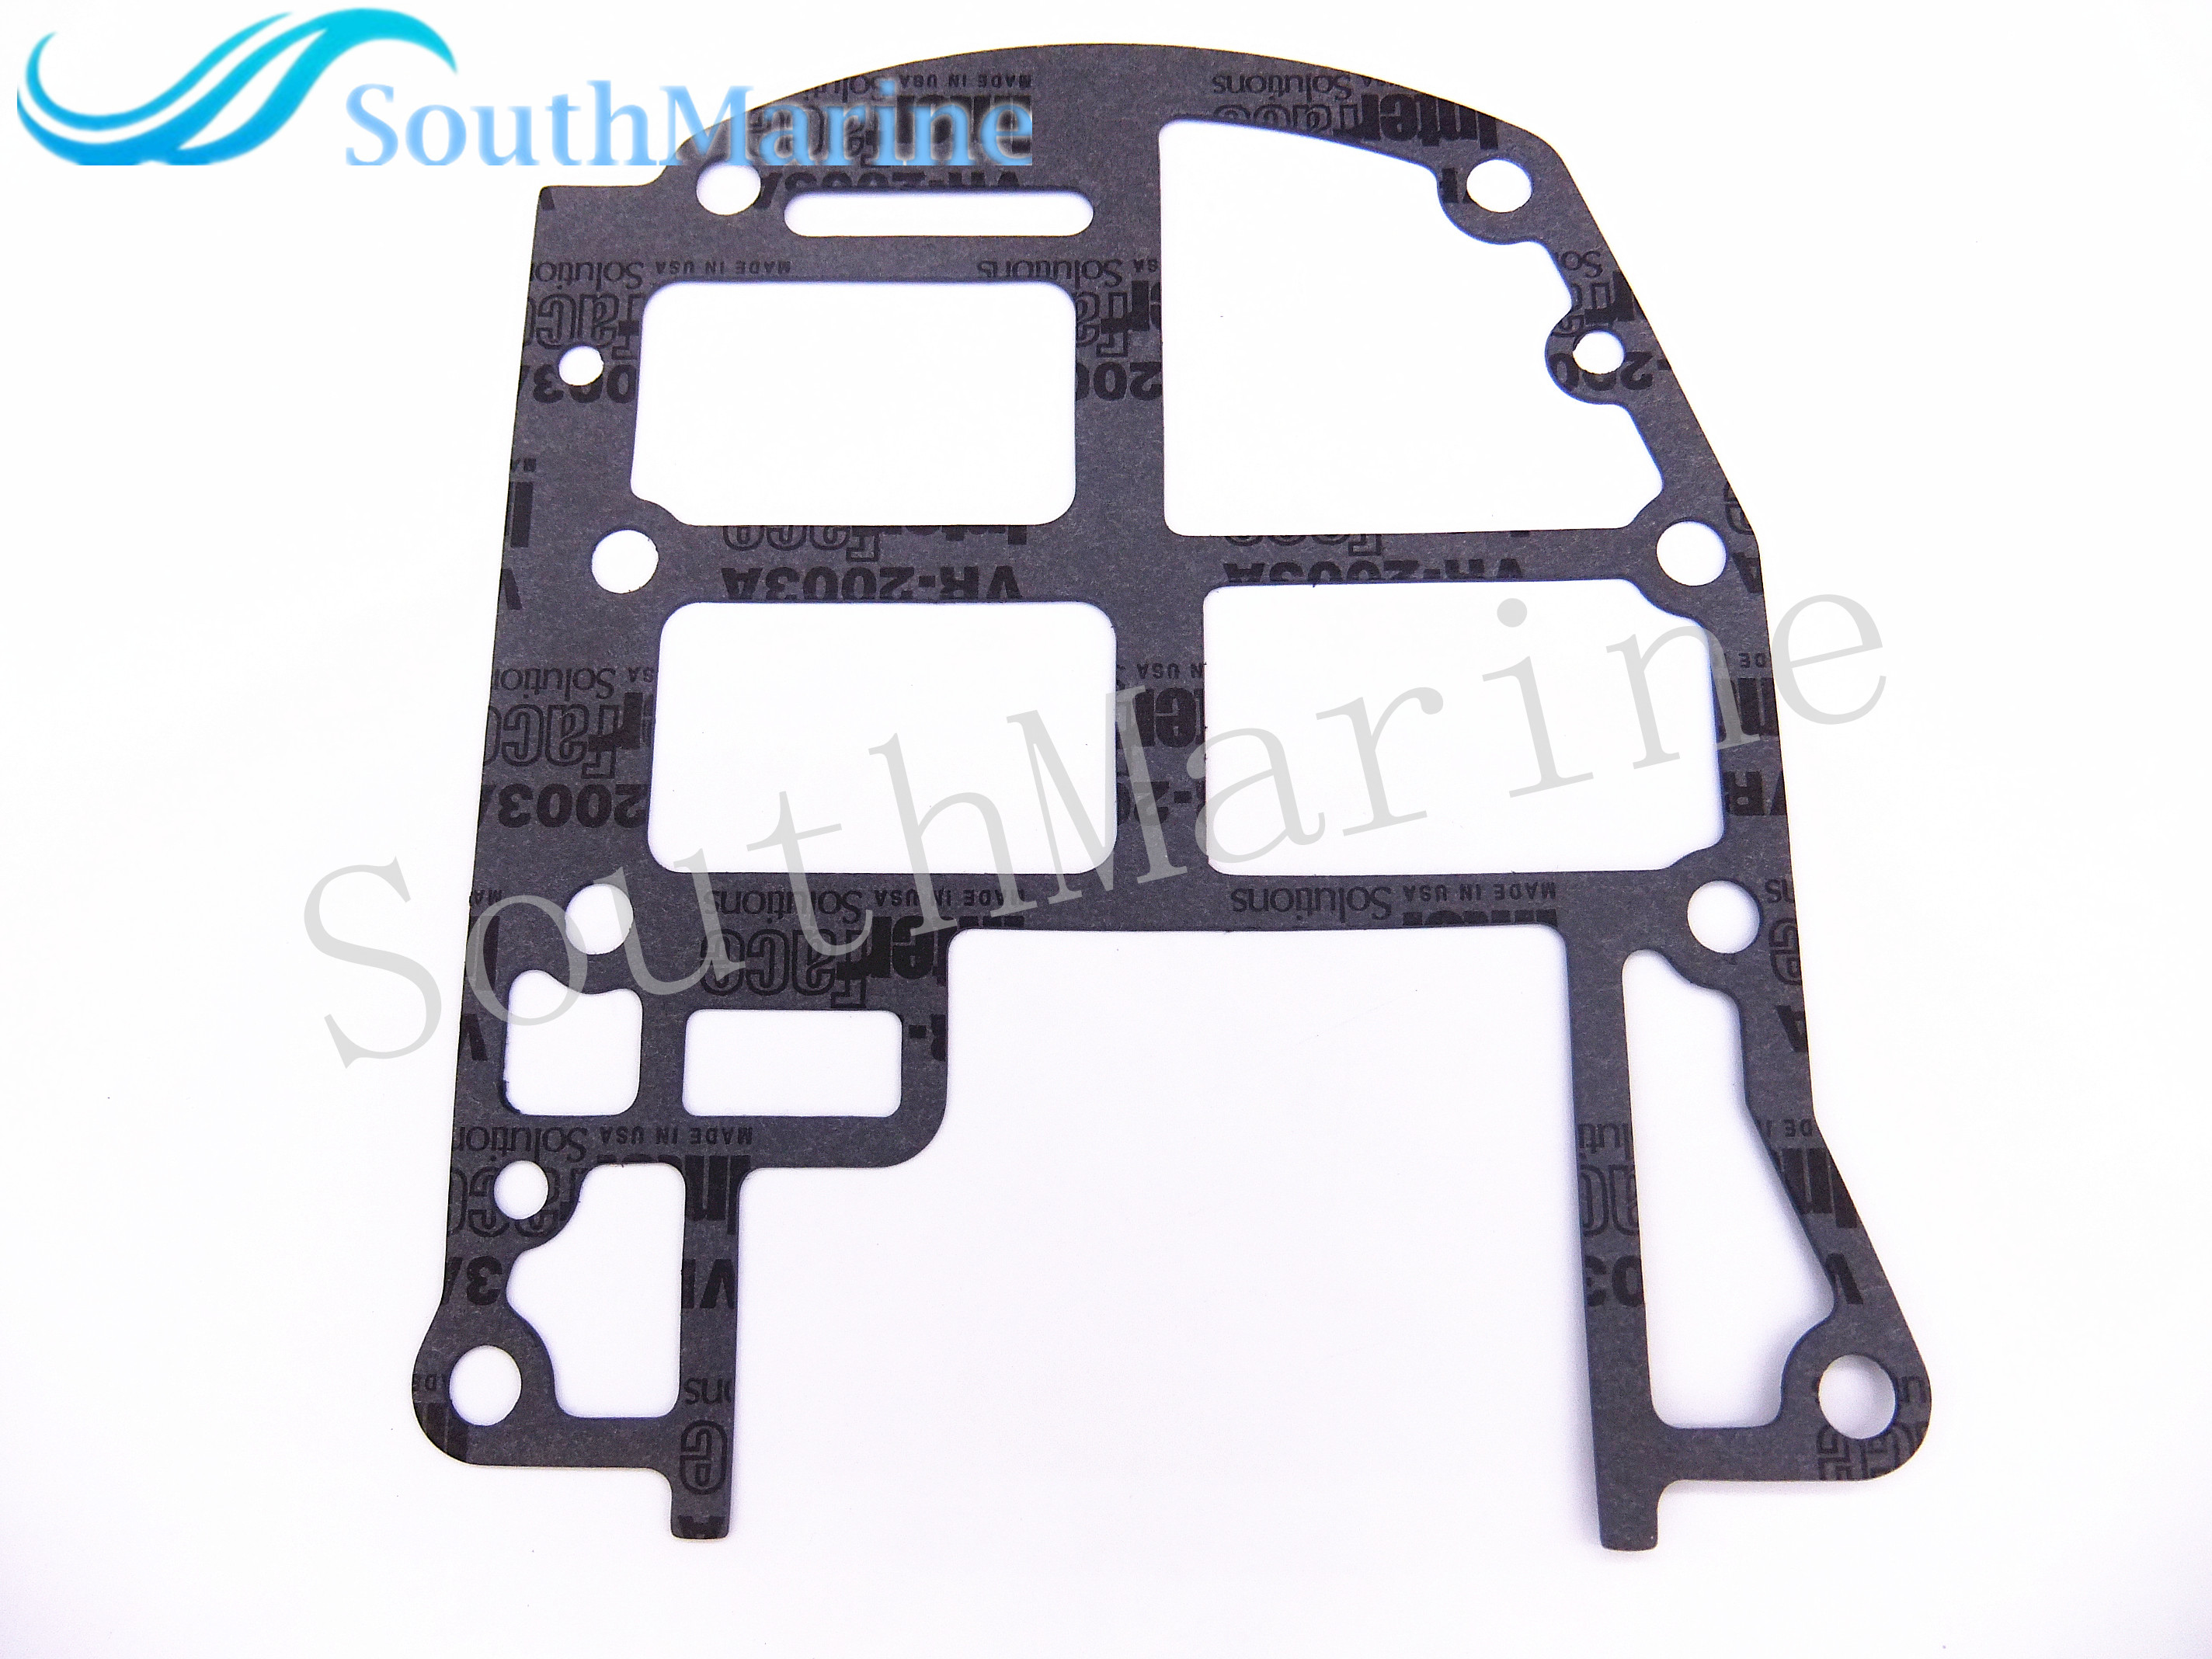 6f5-45113-a0-00 6f5-45113-00-00 Upper Casing Gasket For Yamaha Outboard C40 E40 40hp 36hp Boat Motor Boat Parts & Accessories